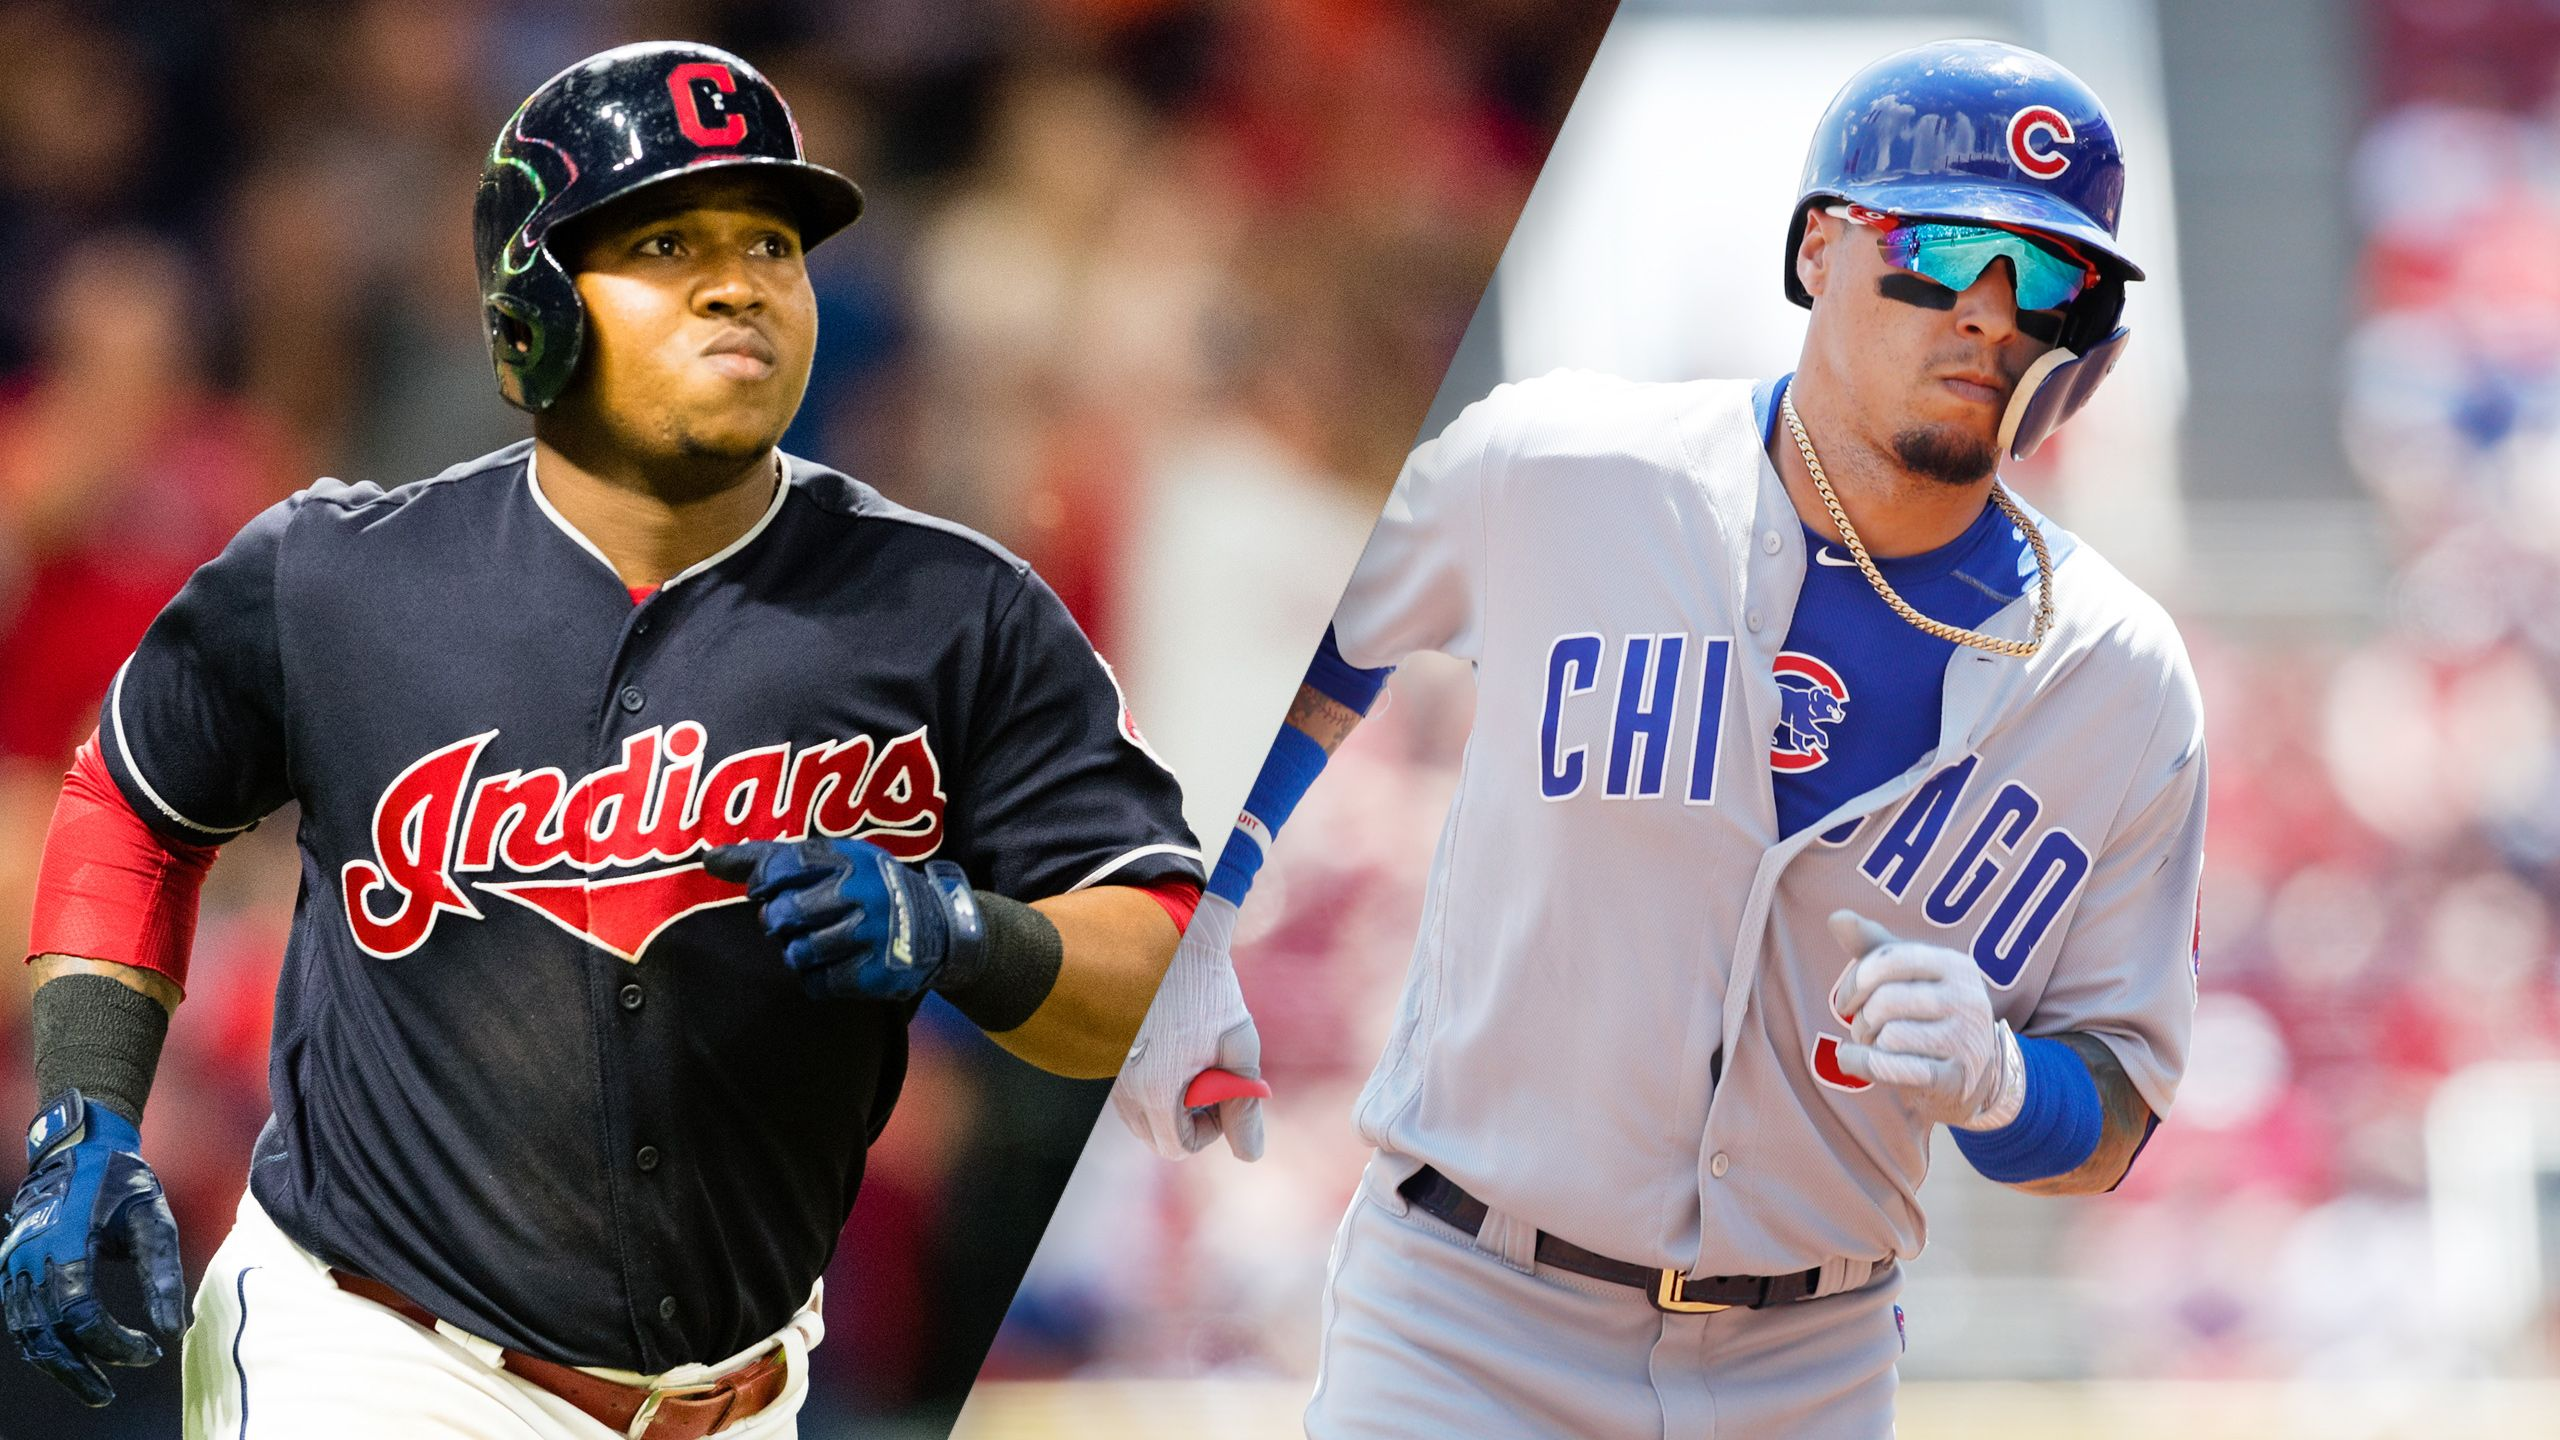 Cleveland Indians vs. Chicago Cubs (re-air)